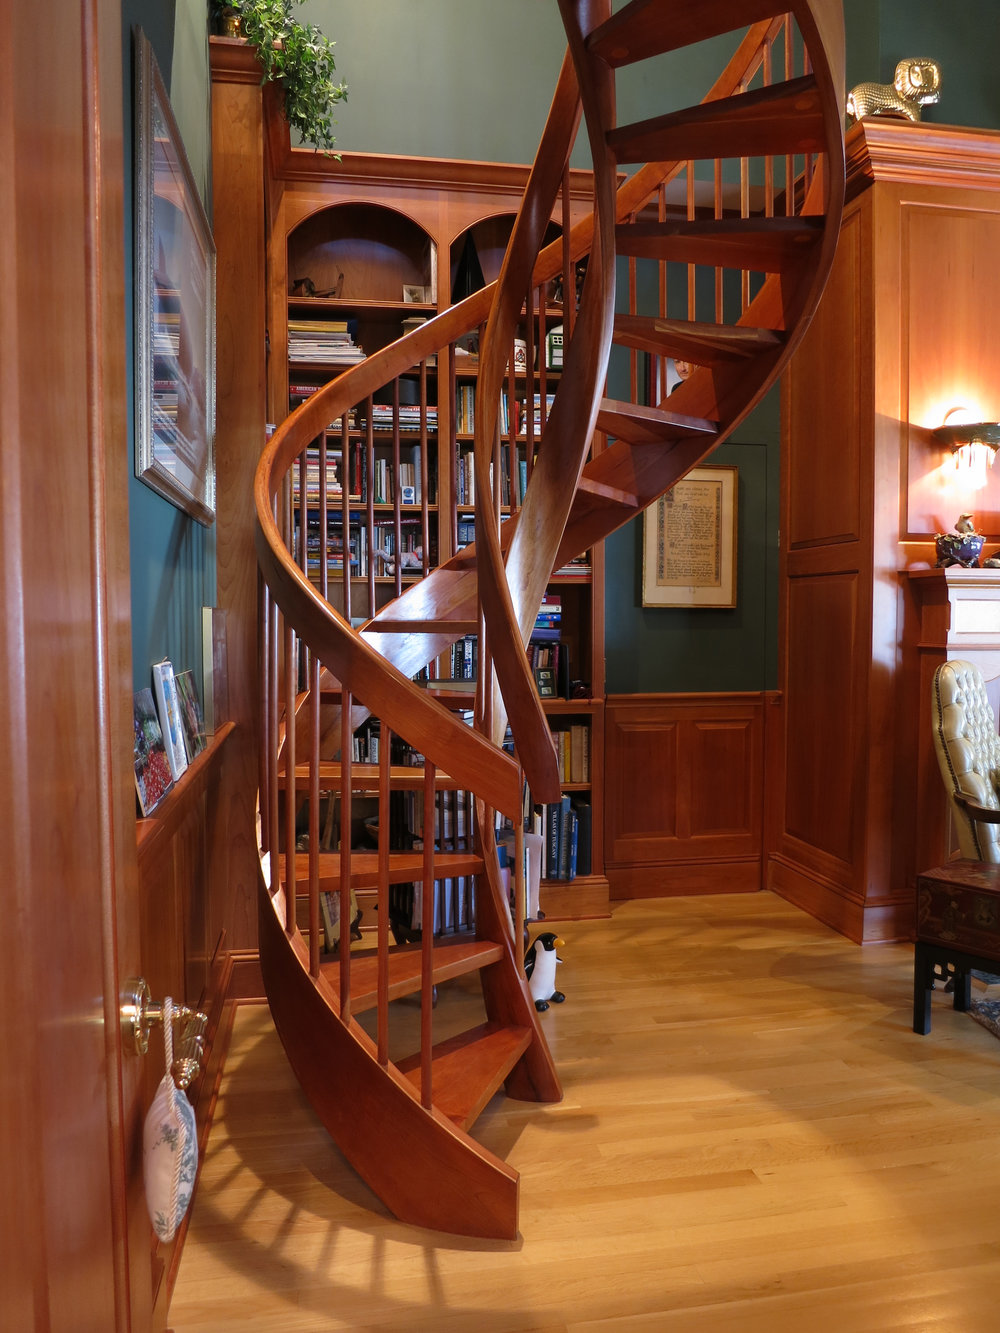 Even wood can be turned from straight to curved as shown in this double helix stair.  DBZ IMAGES